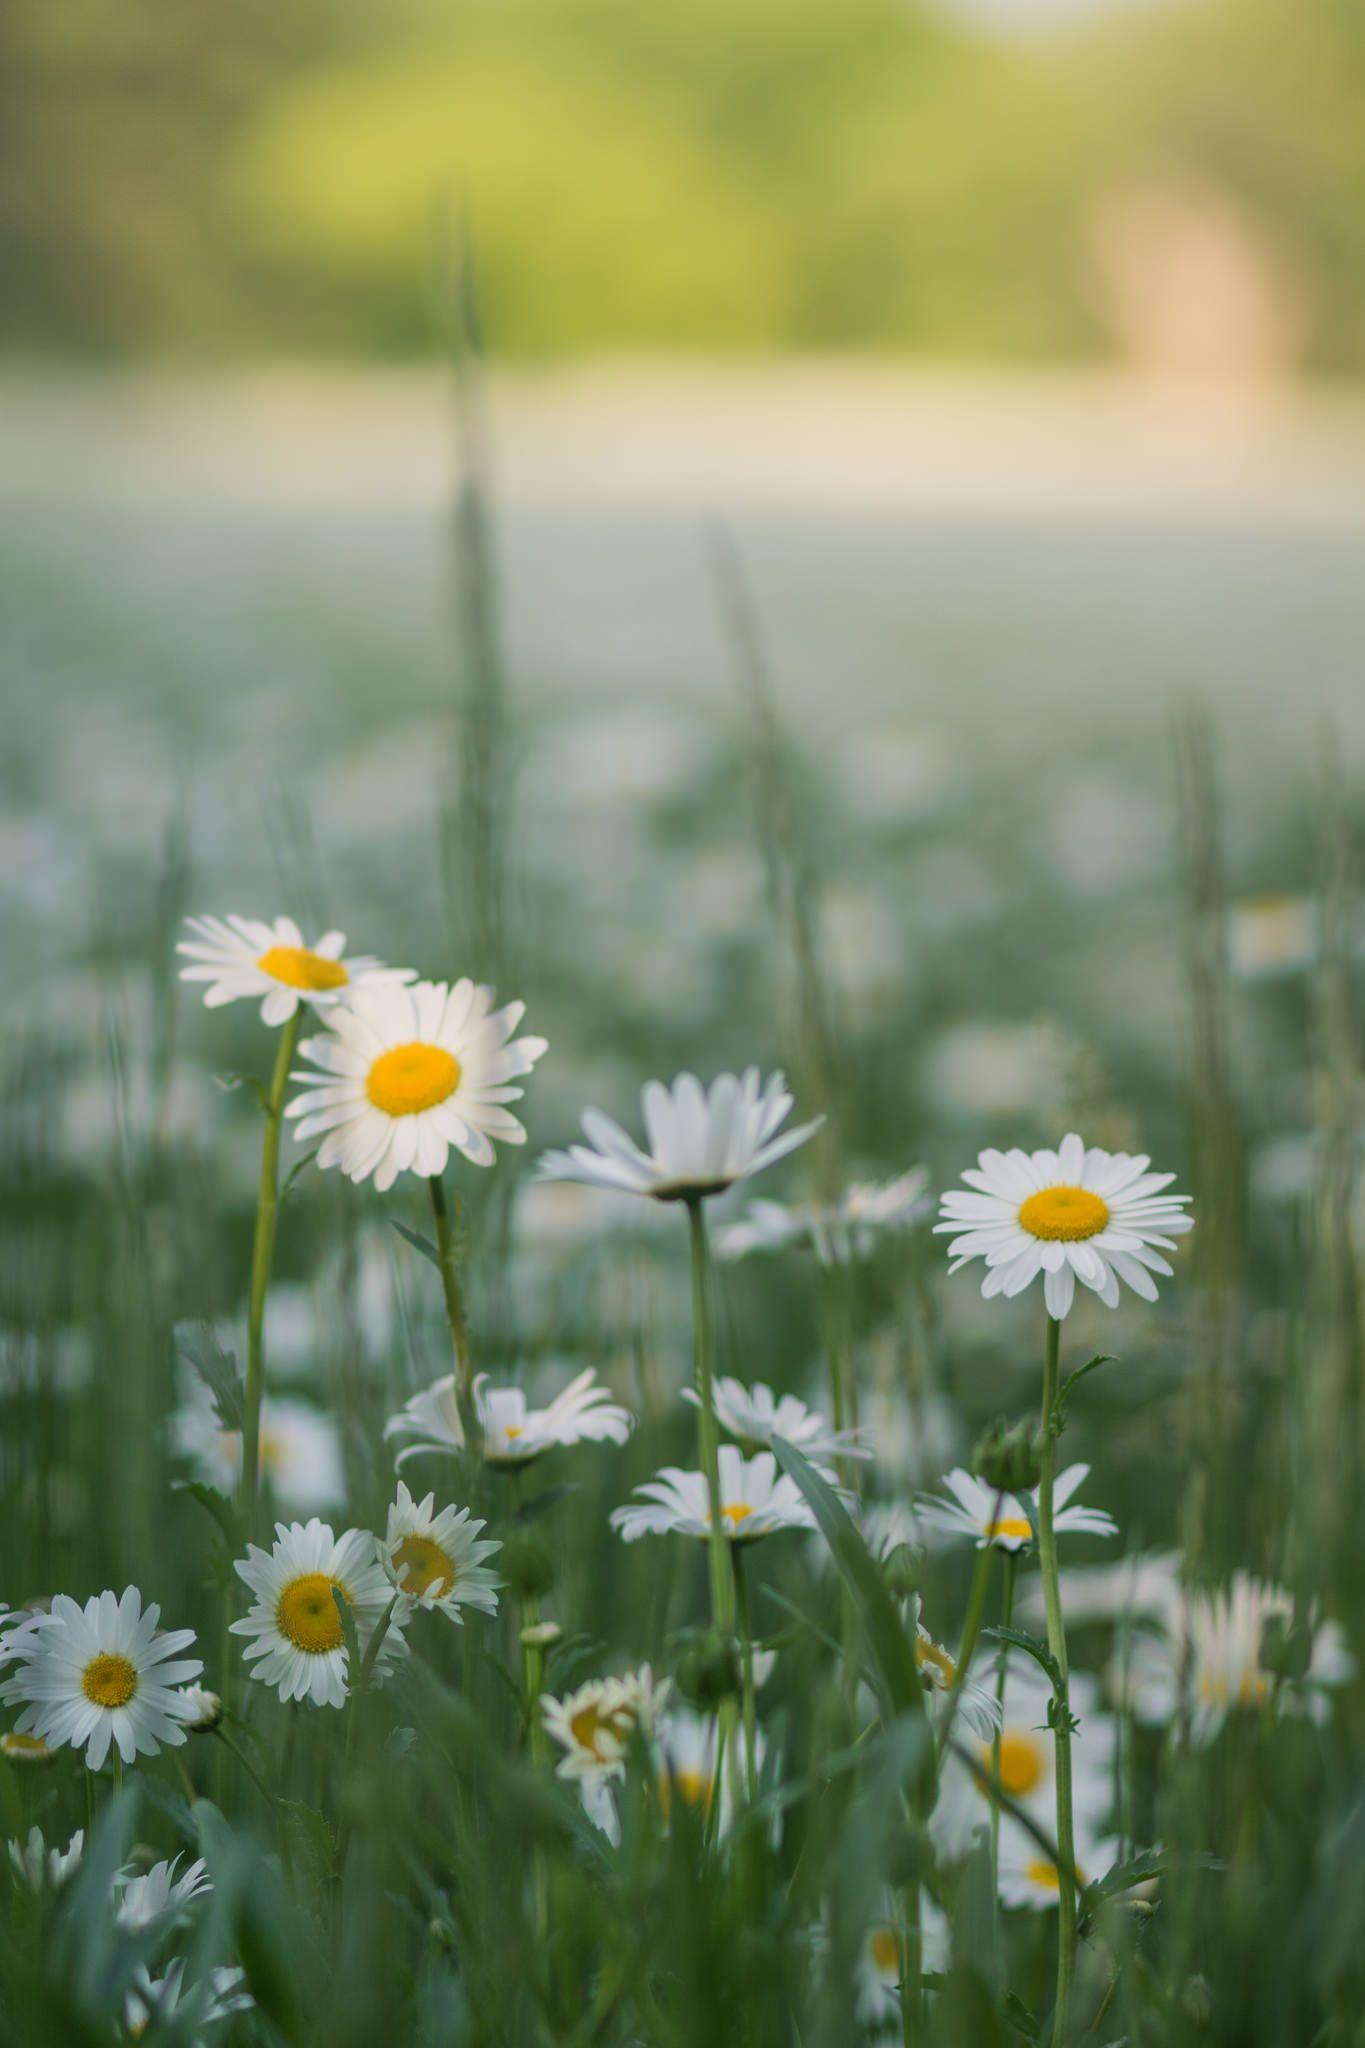 Blankets of white blossom pinterest nature photography fields field of daisies flowers nature photography izmirmasajfo